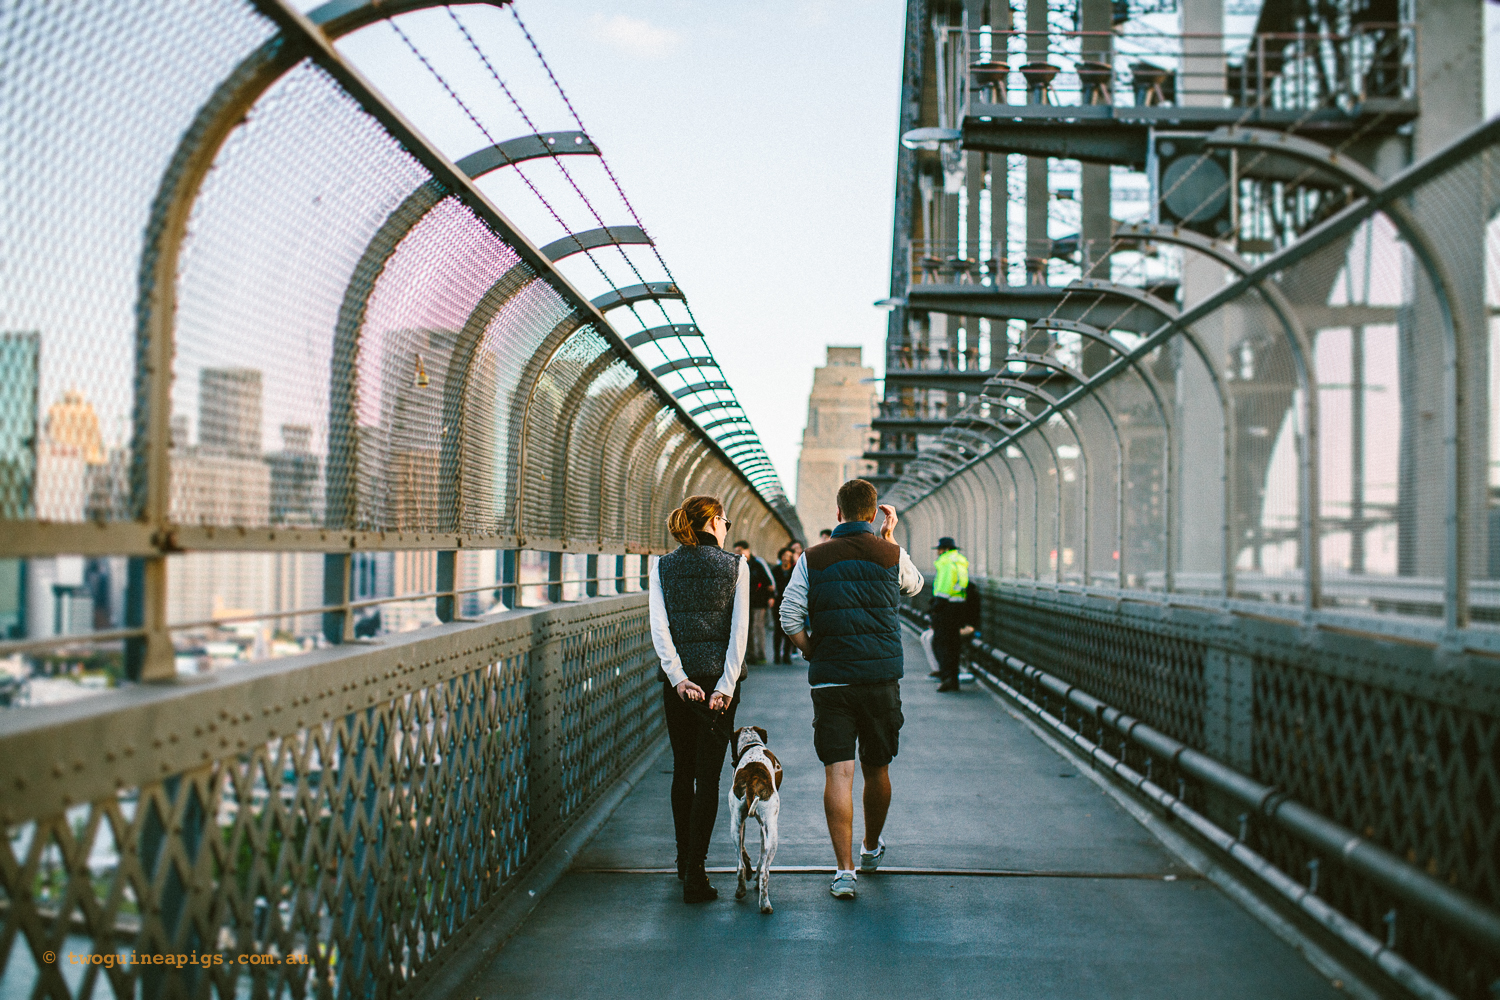 twoguineapigs_pet_photography_sydney_harbour_bridge_walk_pooches_street_photography_urbanscapes